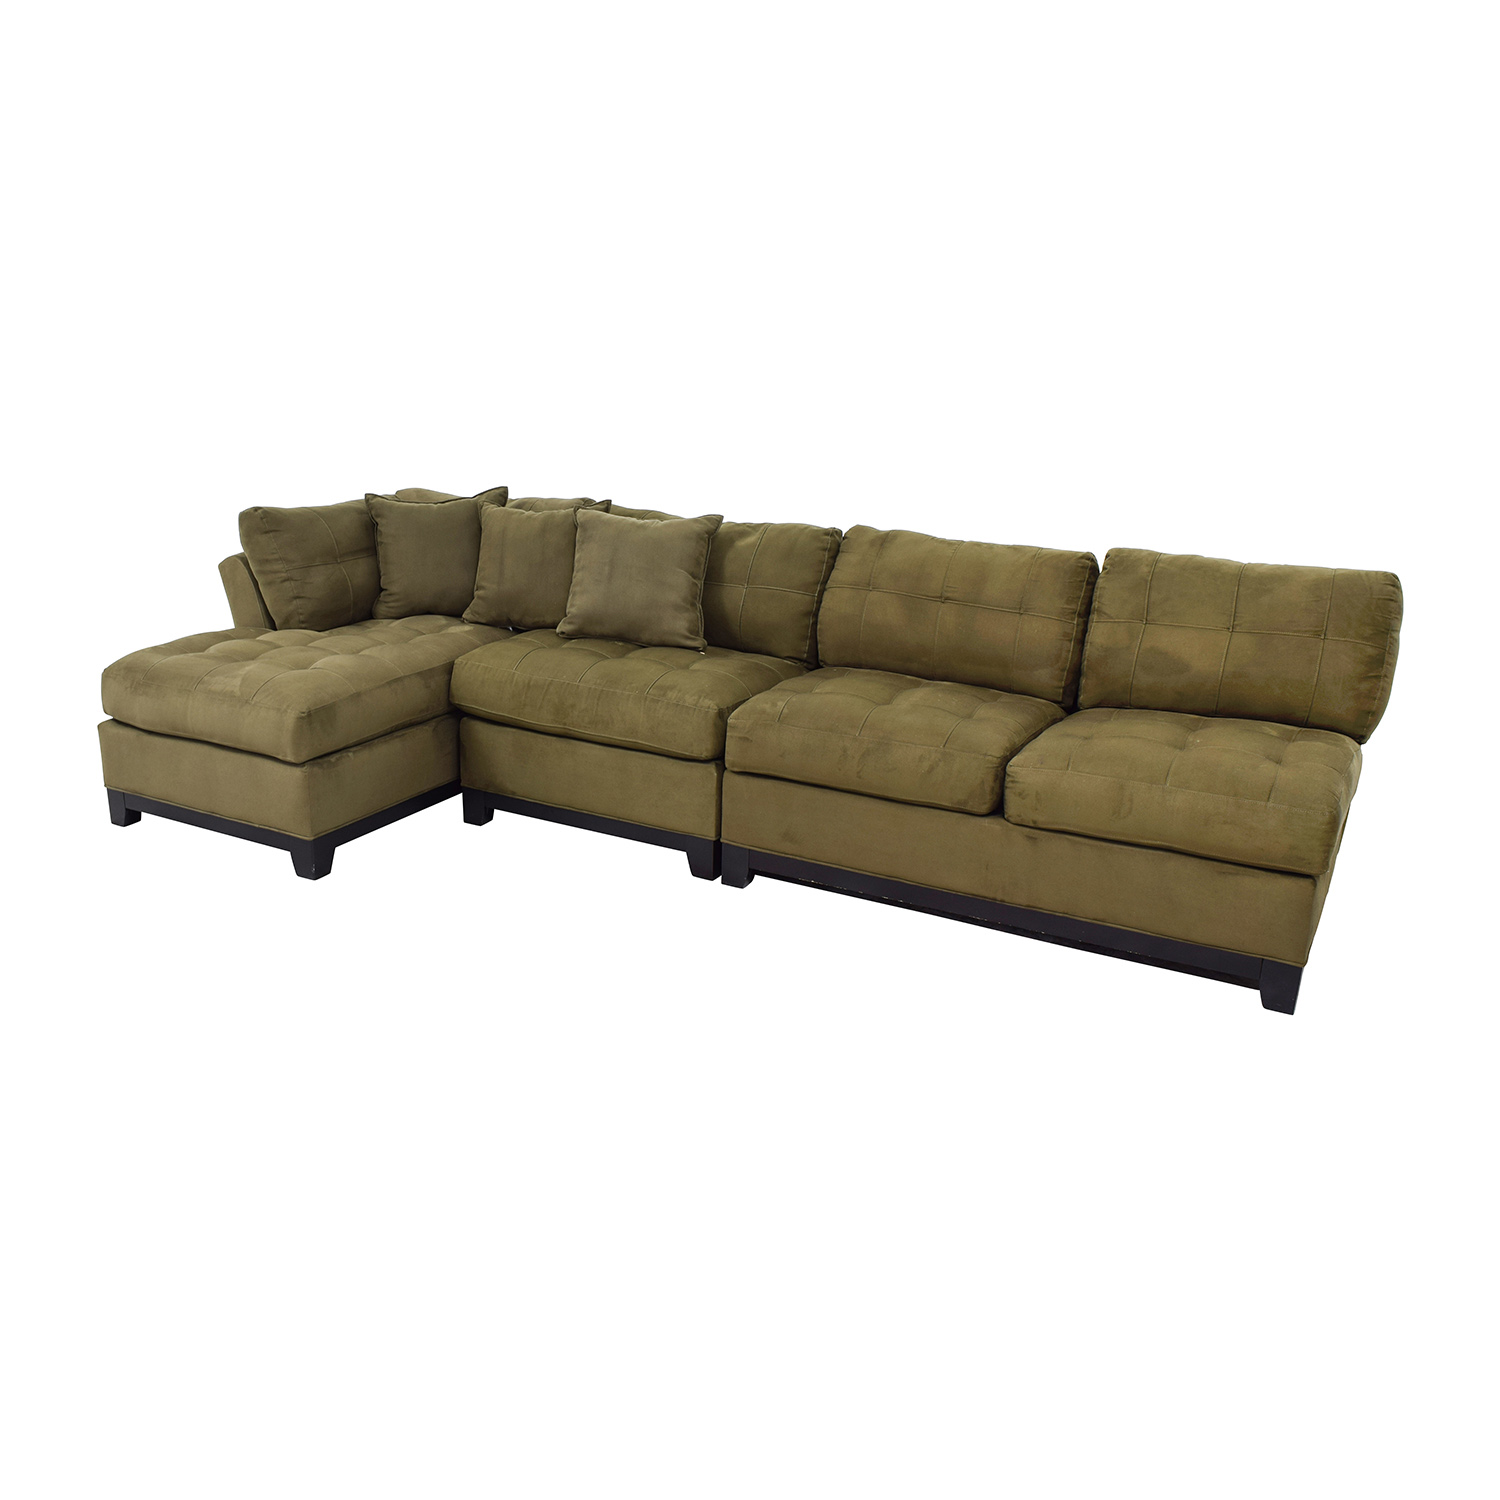 cindy crawford bellingham sofa reviews glider furniture village sofas canada home the honoroak